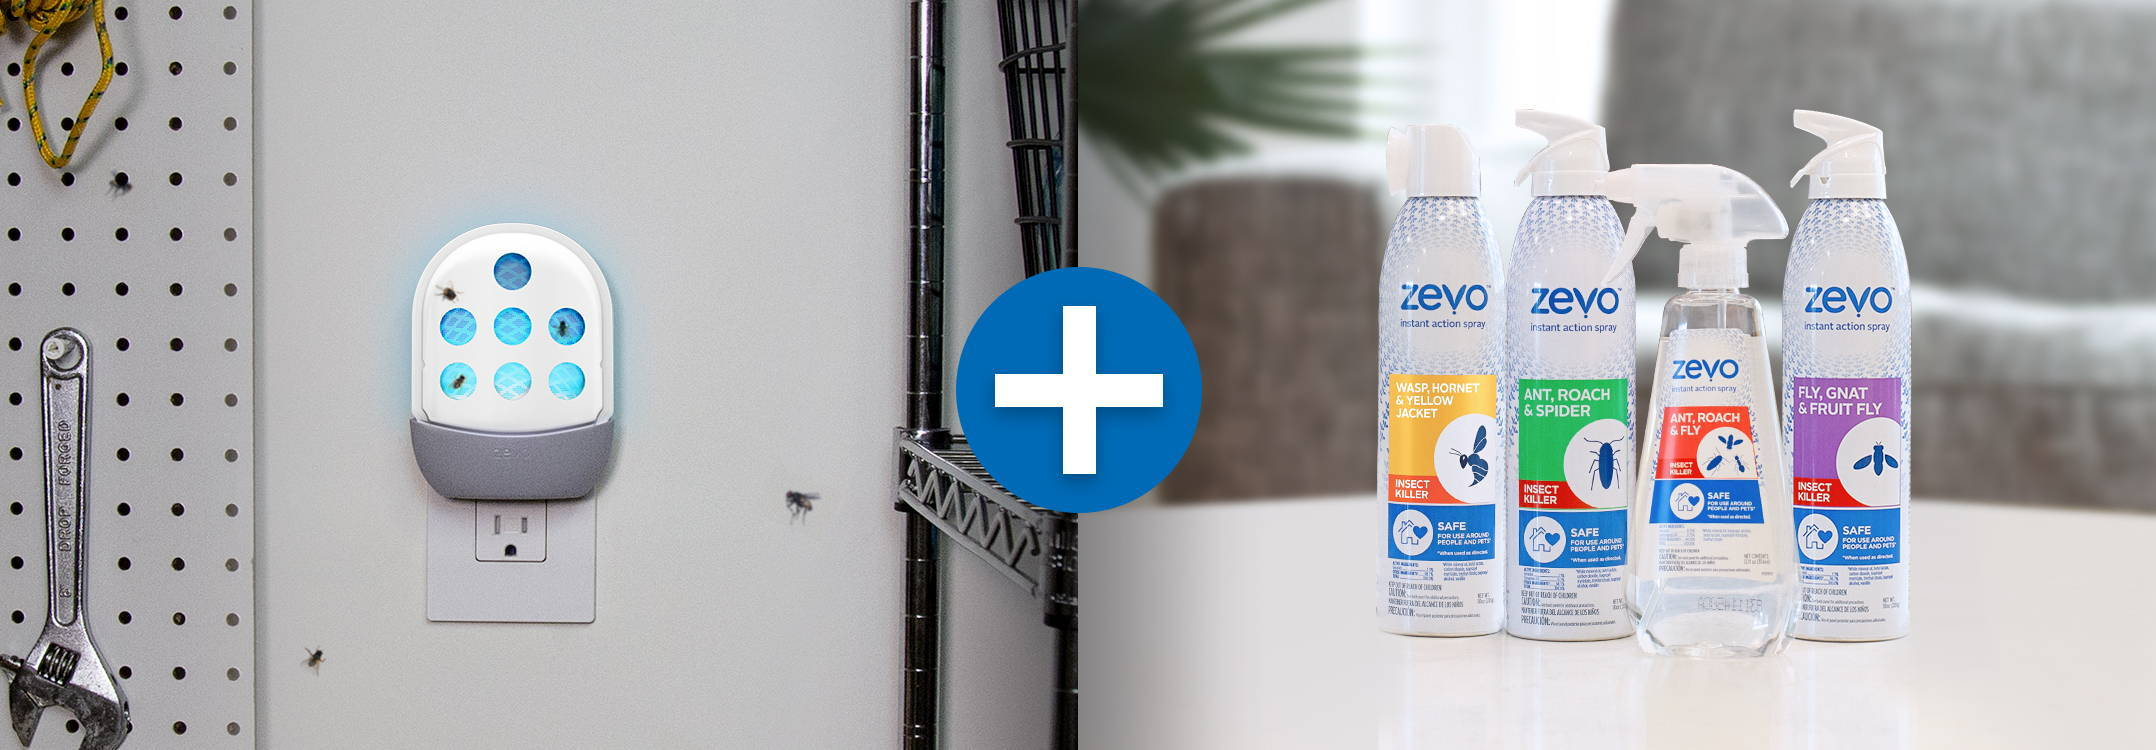 Don T Bug Out Protect Your Whole Home With Zevo Bug Control